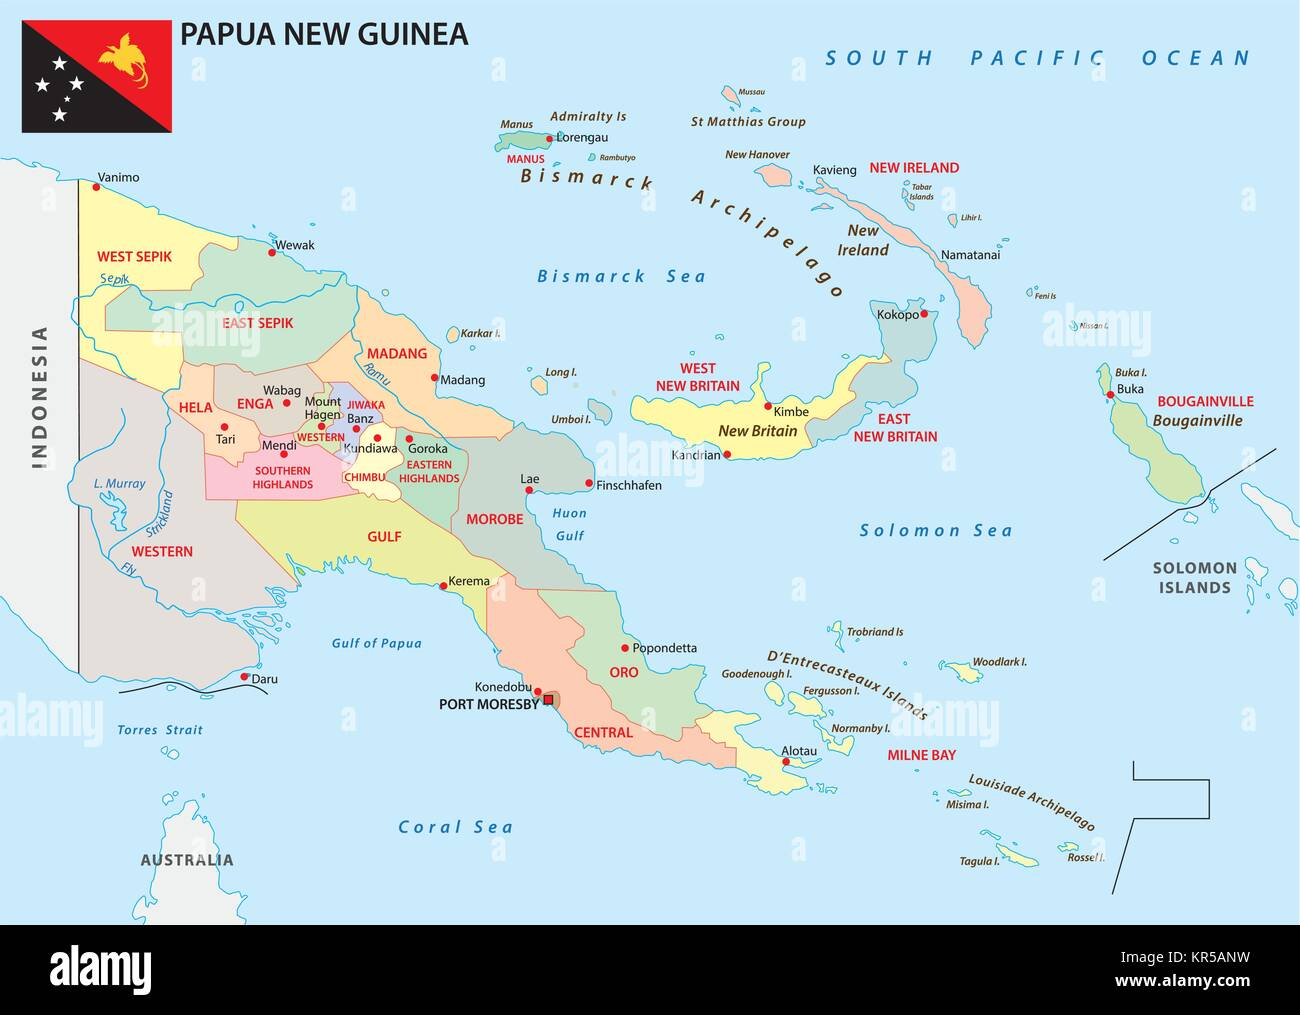 papua new guinea administrative and political vector map with flag ...